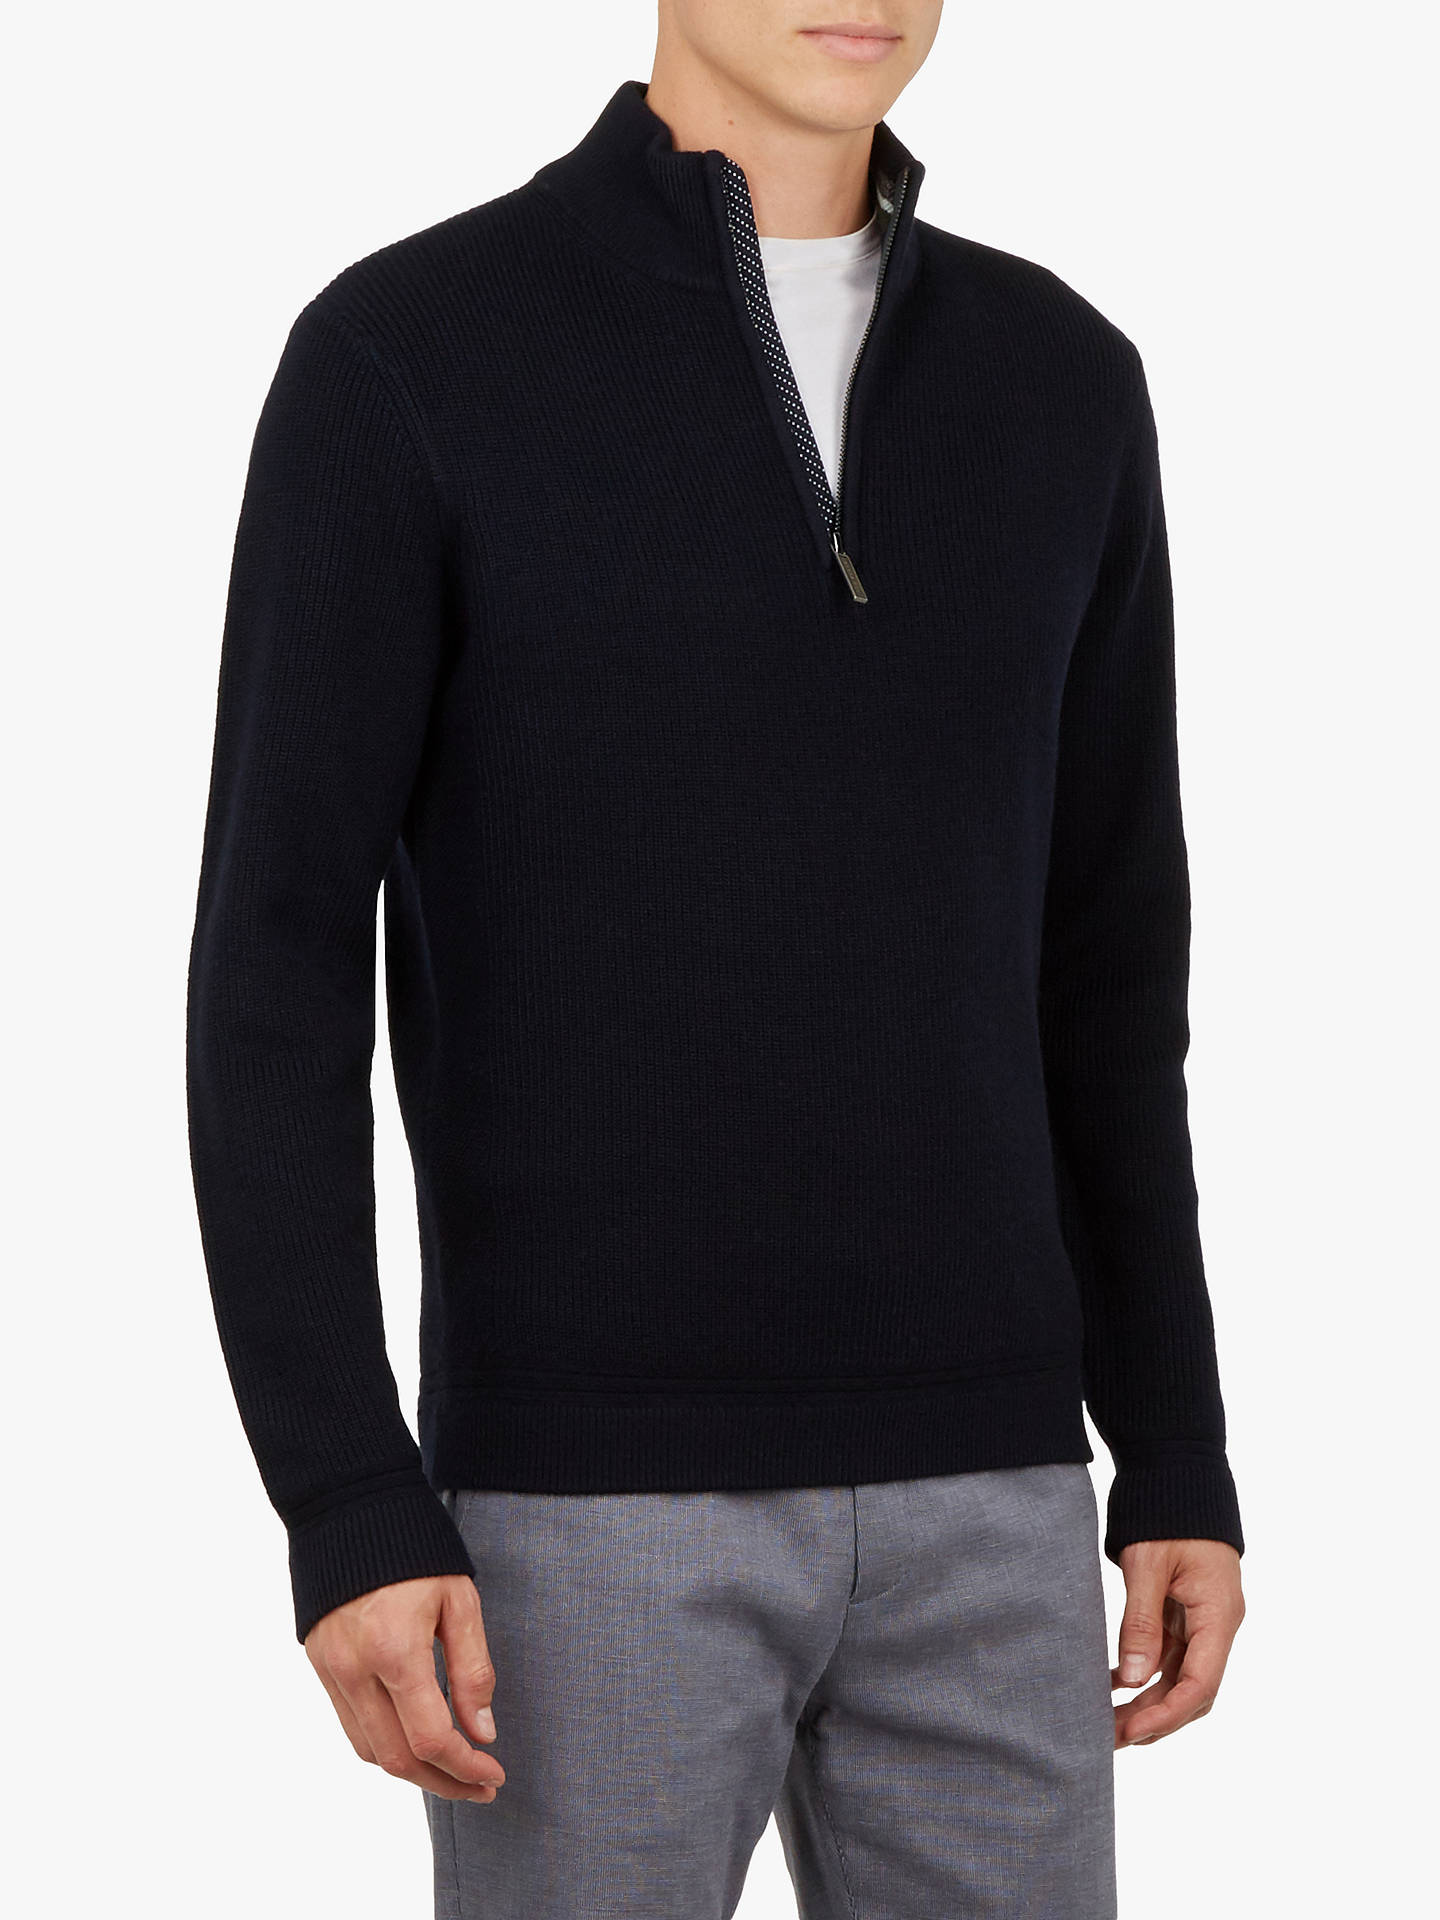 cc94cf85898 Ted Baker Lohas Half Zip Funnel Neck Sweatshirt at John Lewis & Partners